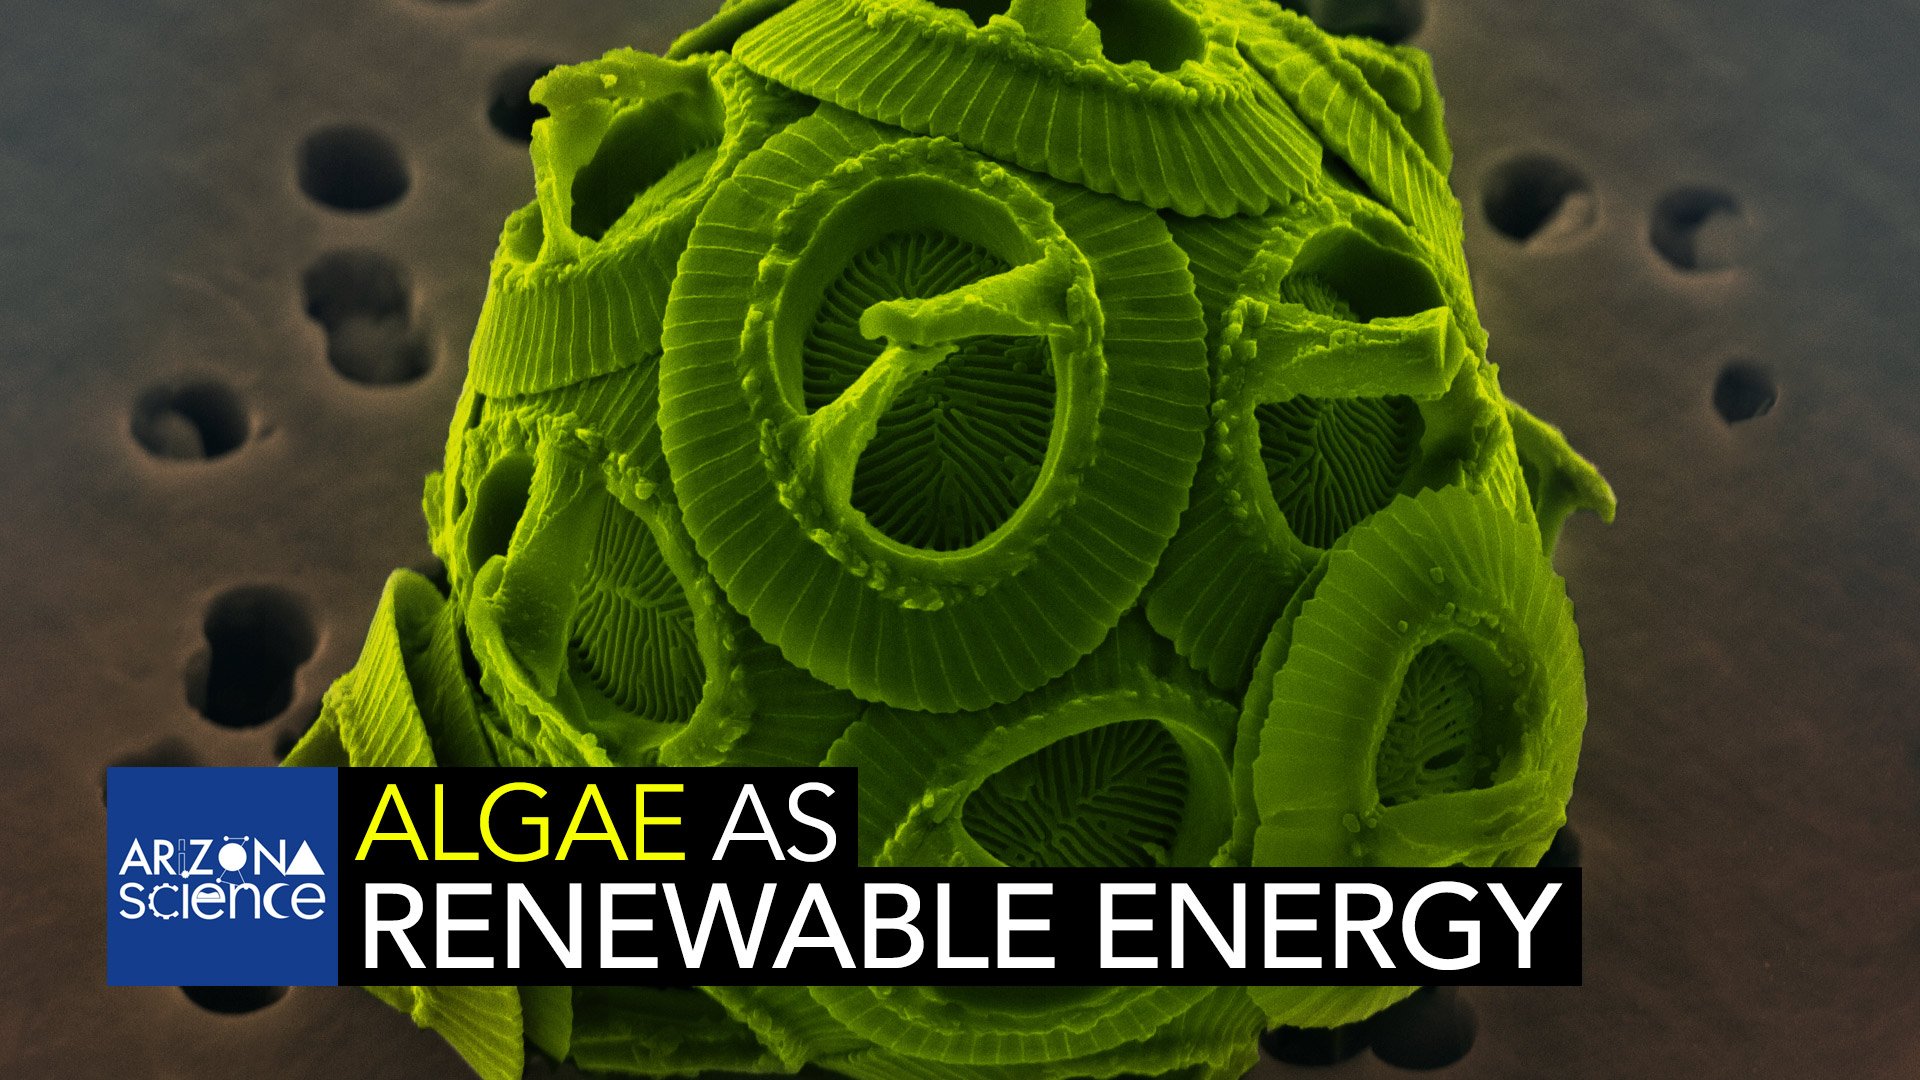 Finding new ways to generate energy with minimal environmental impact. Pictured: algae as viewed in a scanning electron microscope.